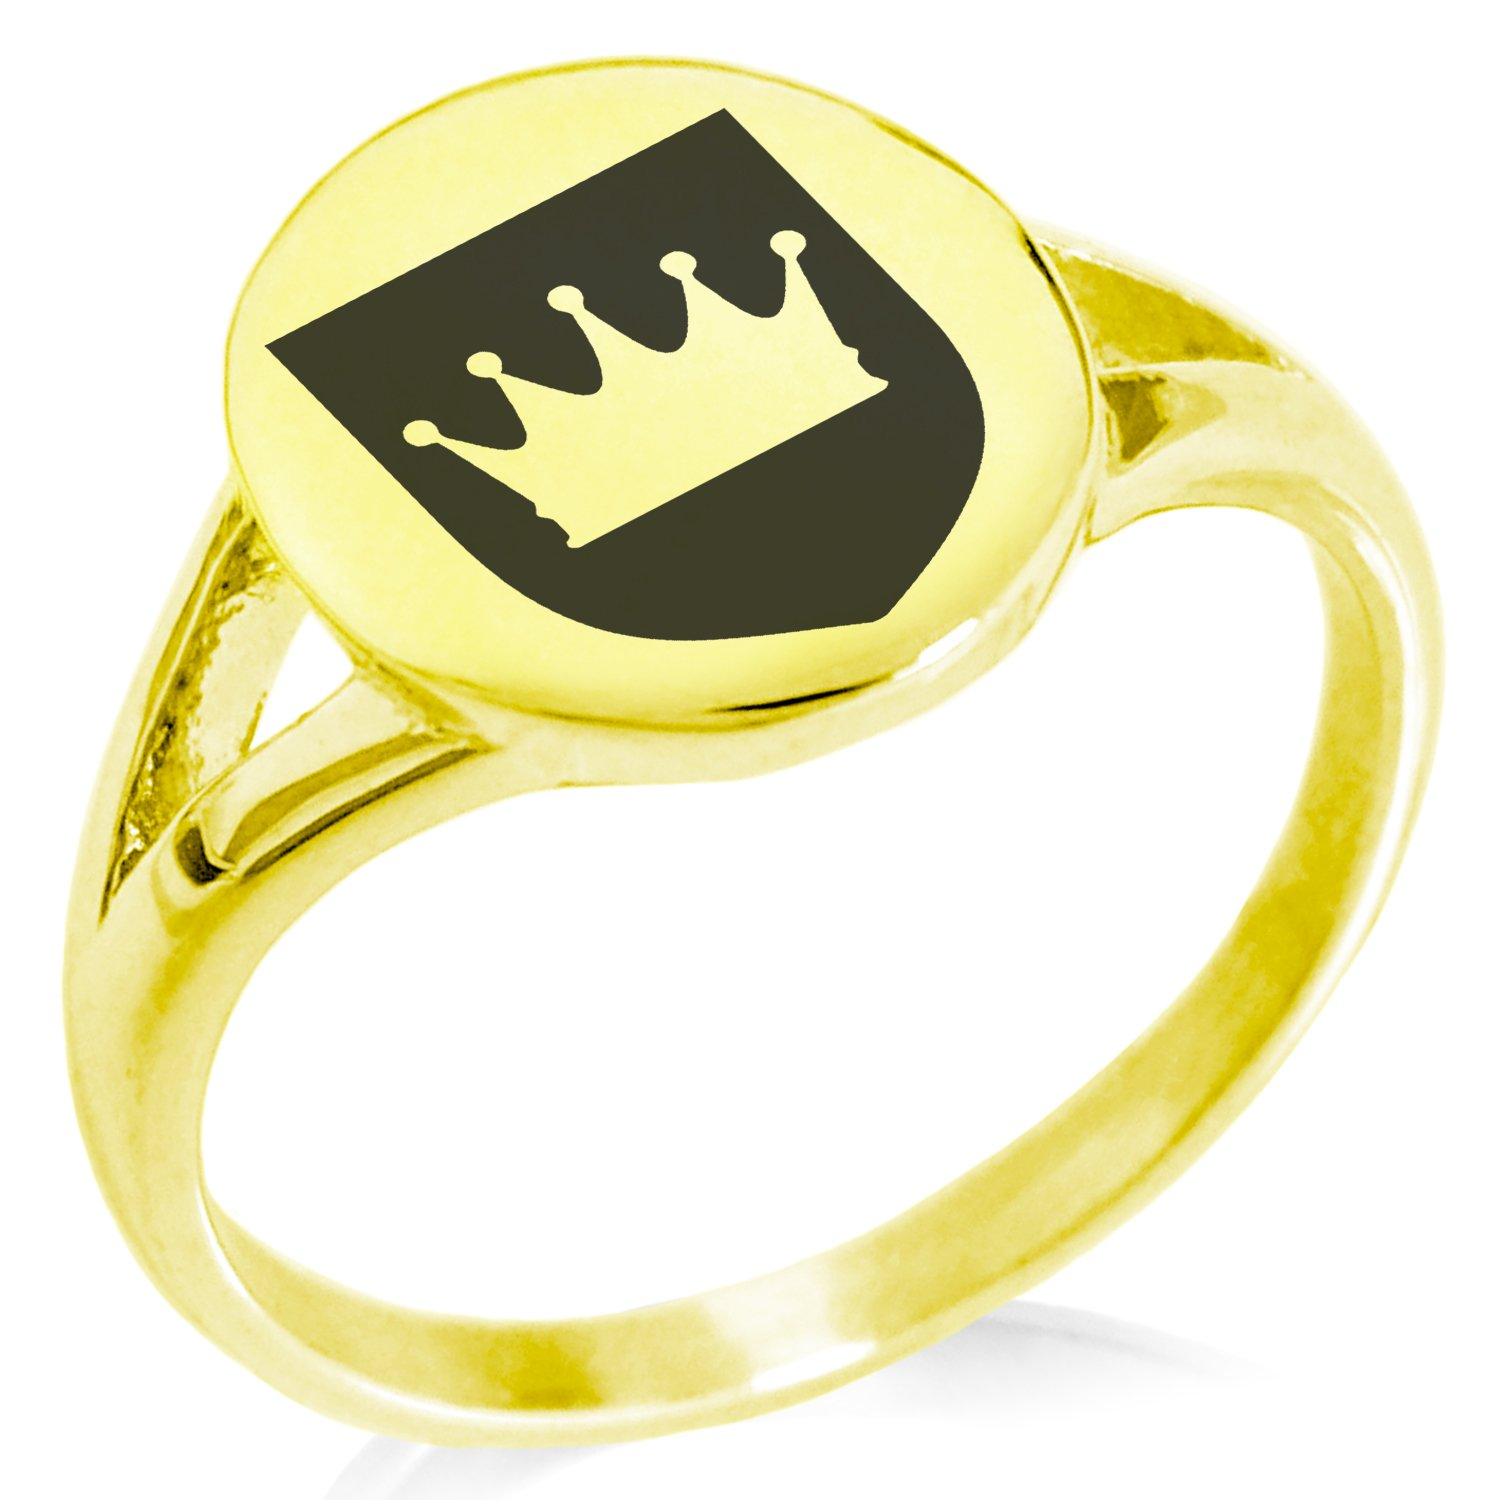 Tioneer Gold Plated Stainless Steel Crown Royal Coat of Arms Shield Symbol Minimalist Oval Top Polished Statement Ring, Size 6 by Tioneer (Image #1)